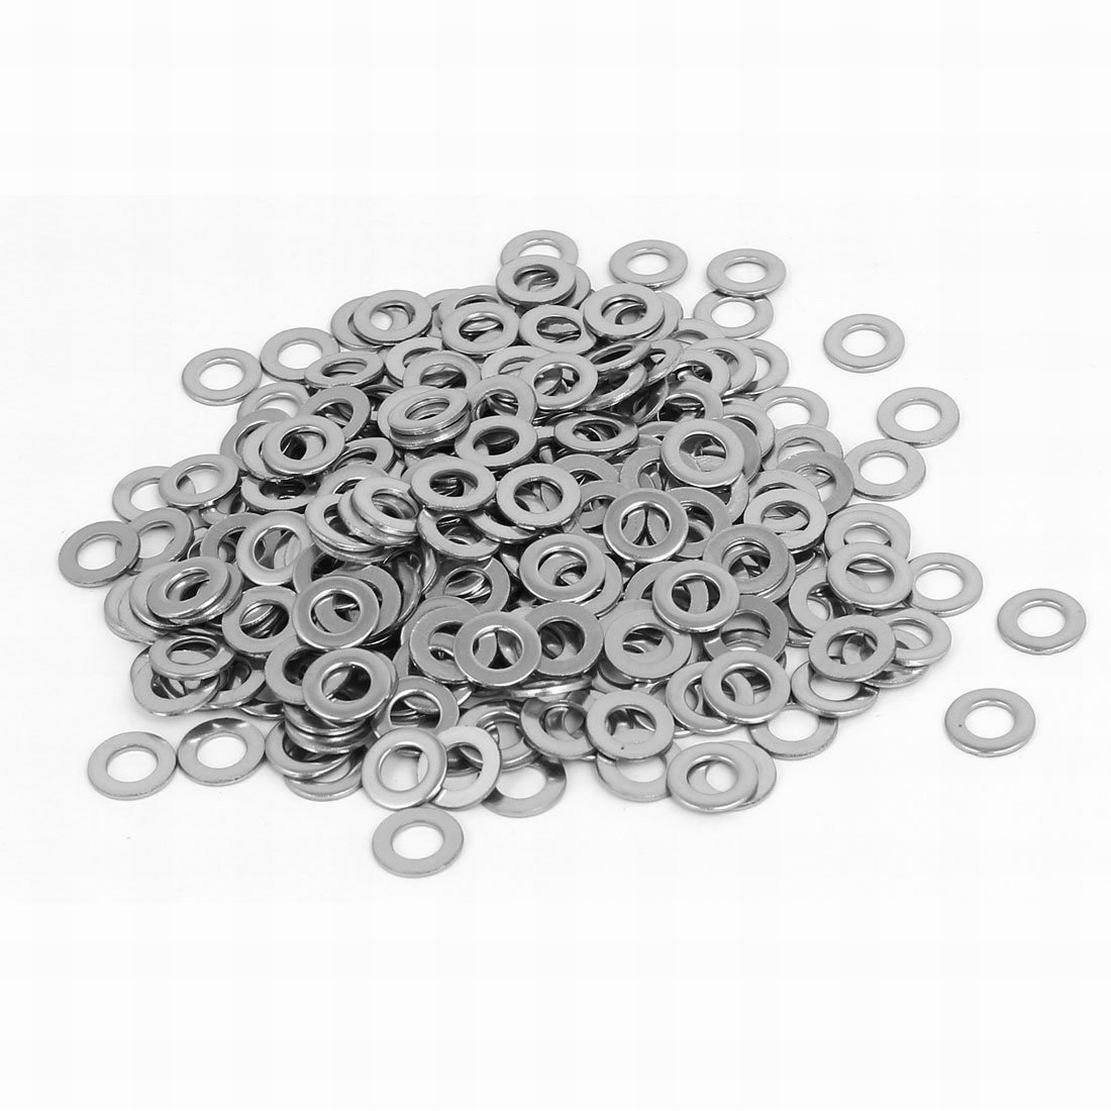 uxcell M2 304 Stainless Steel Flat Washers Spacers Fastener DIN125 200PCS